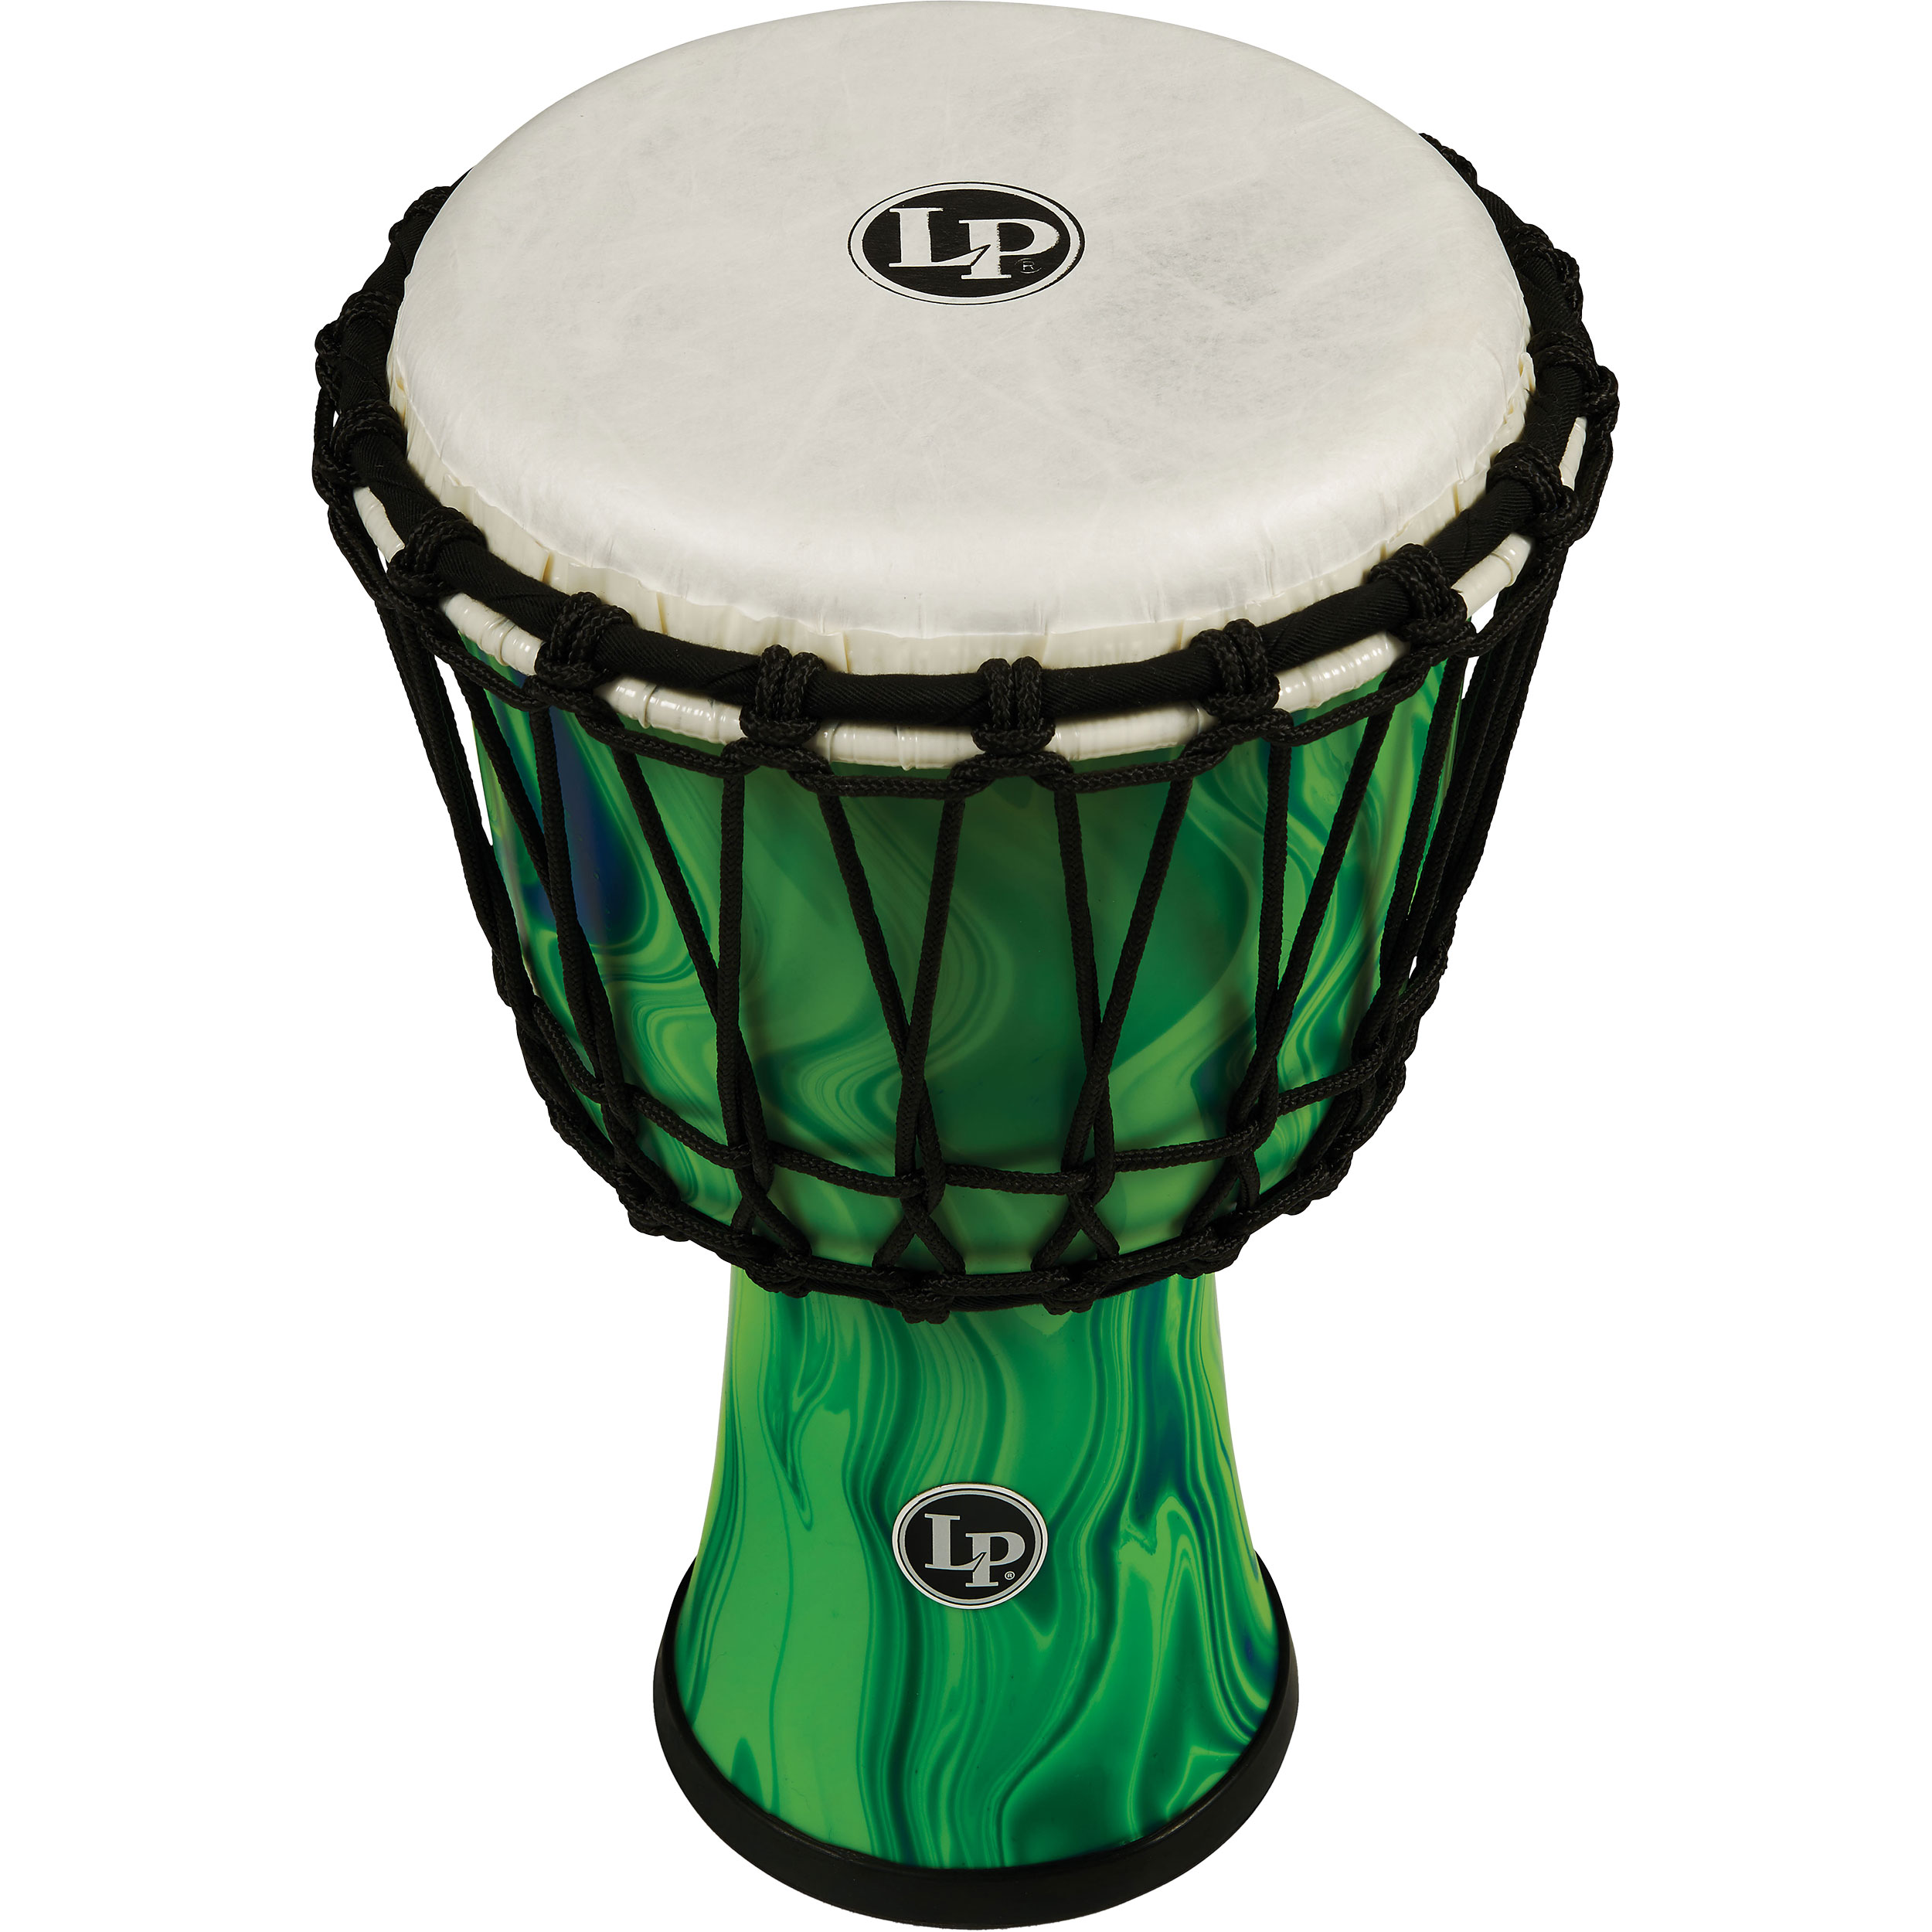 "LP 7"" Rope Tuned Circle Djembe in Green Marble"